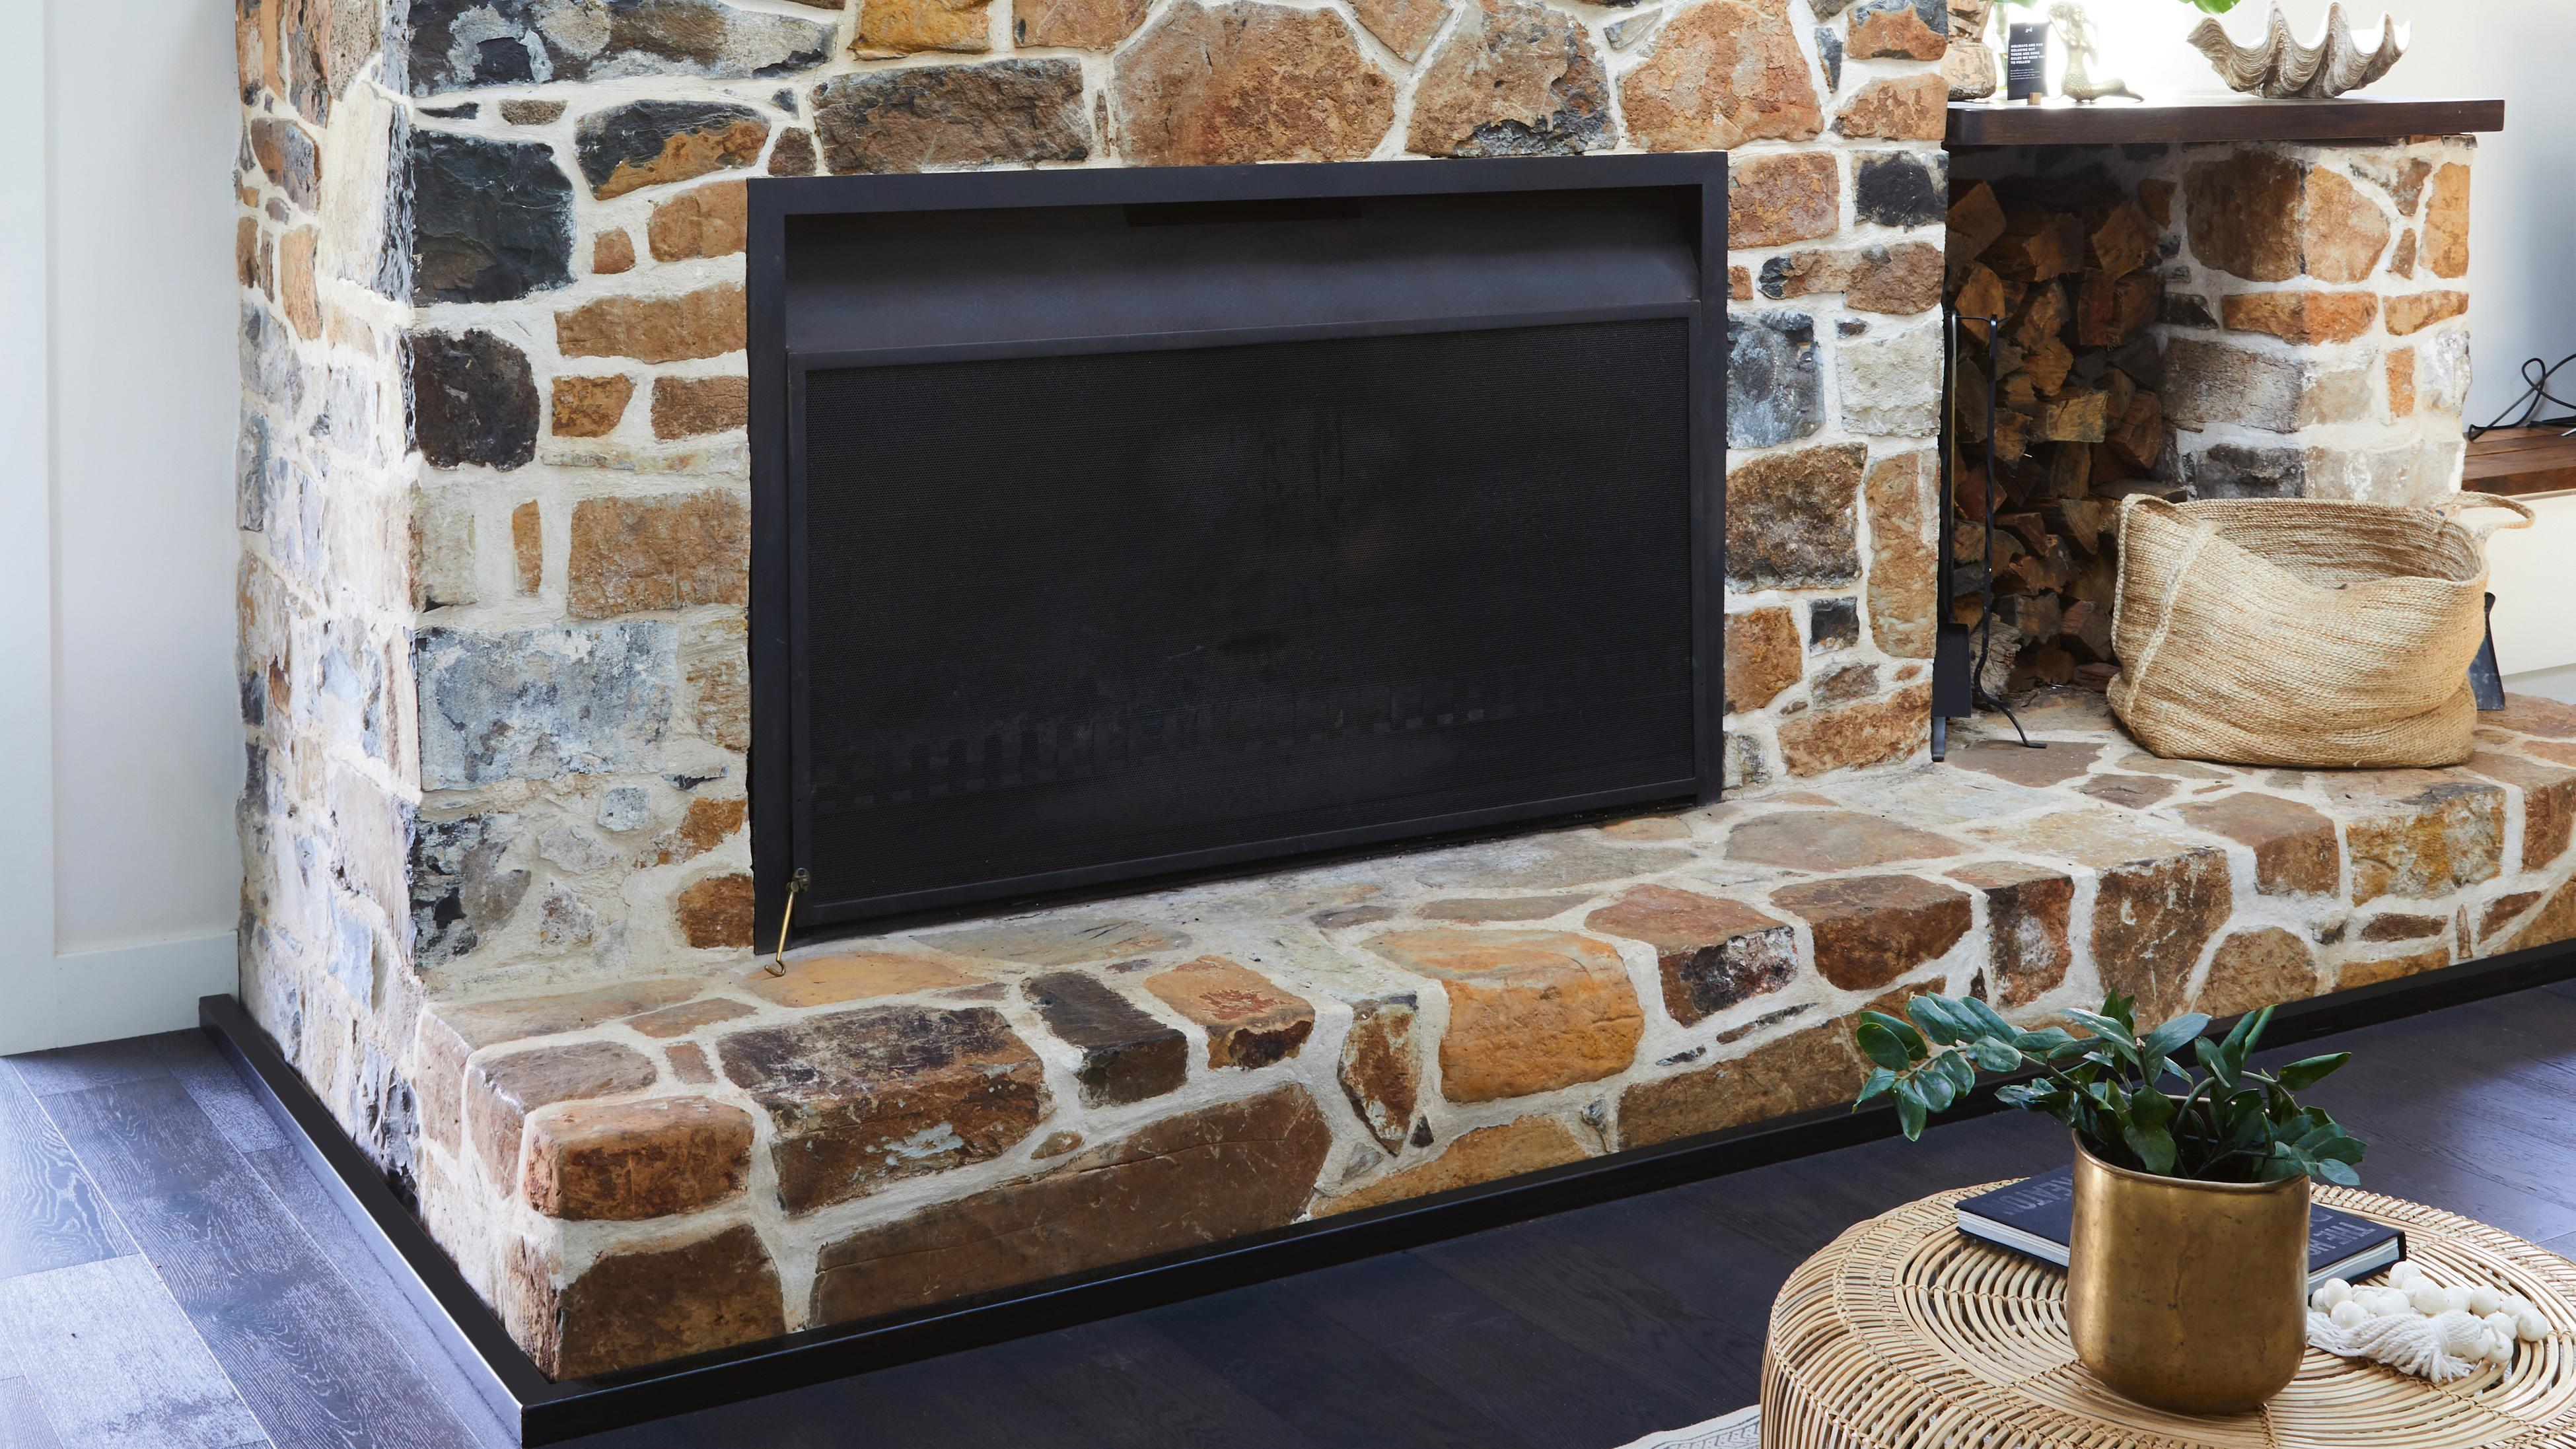 Built-in stone fireplace